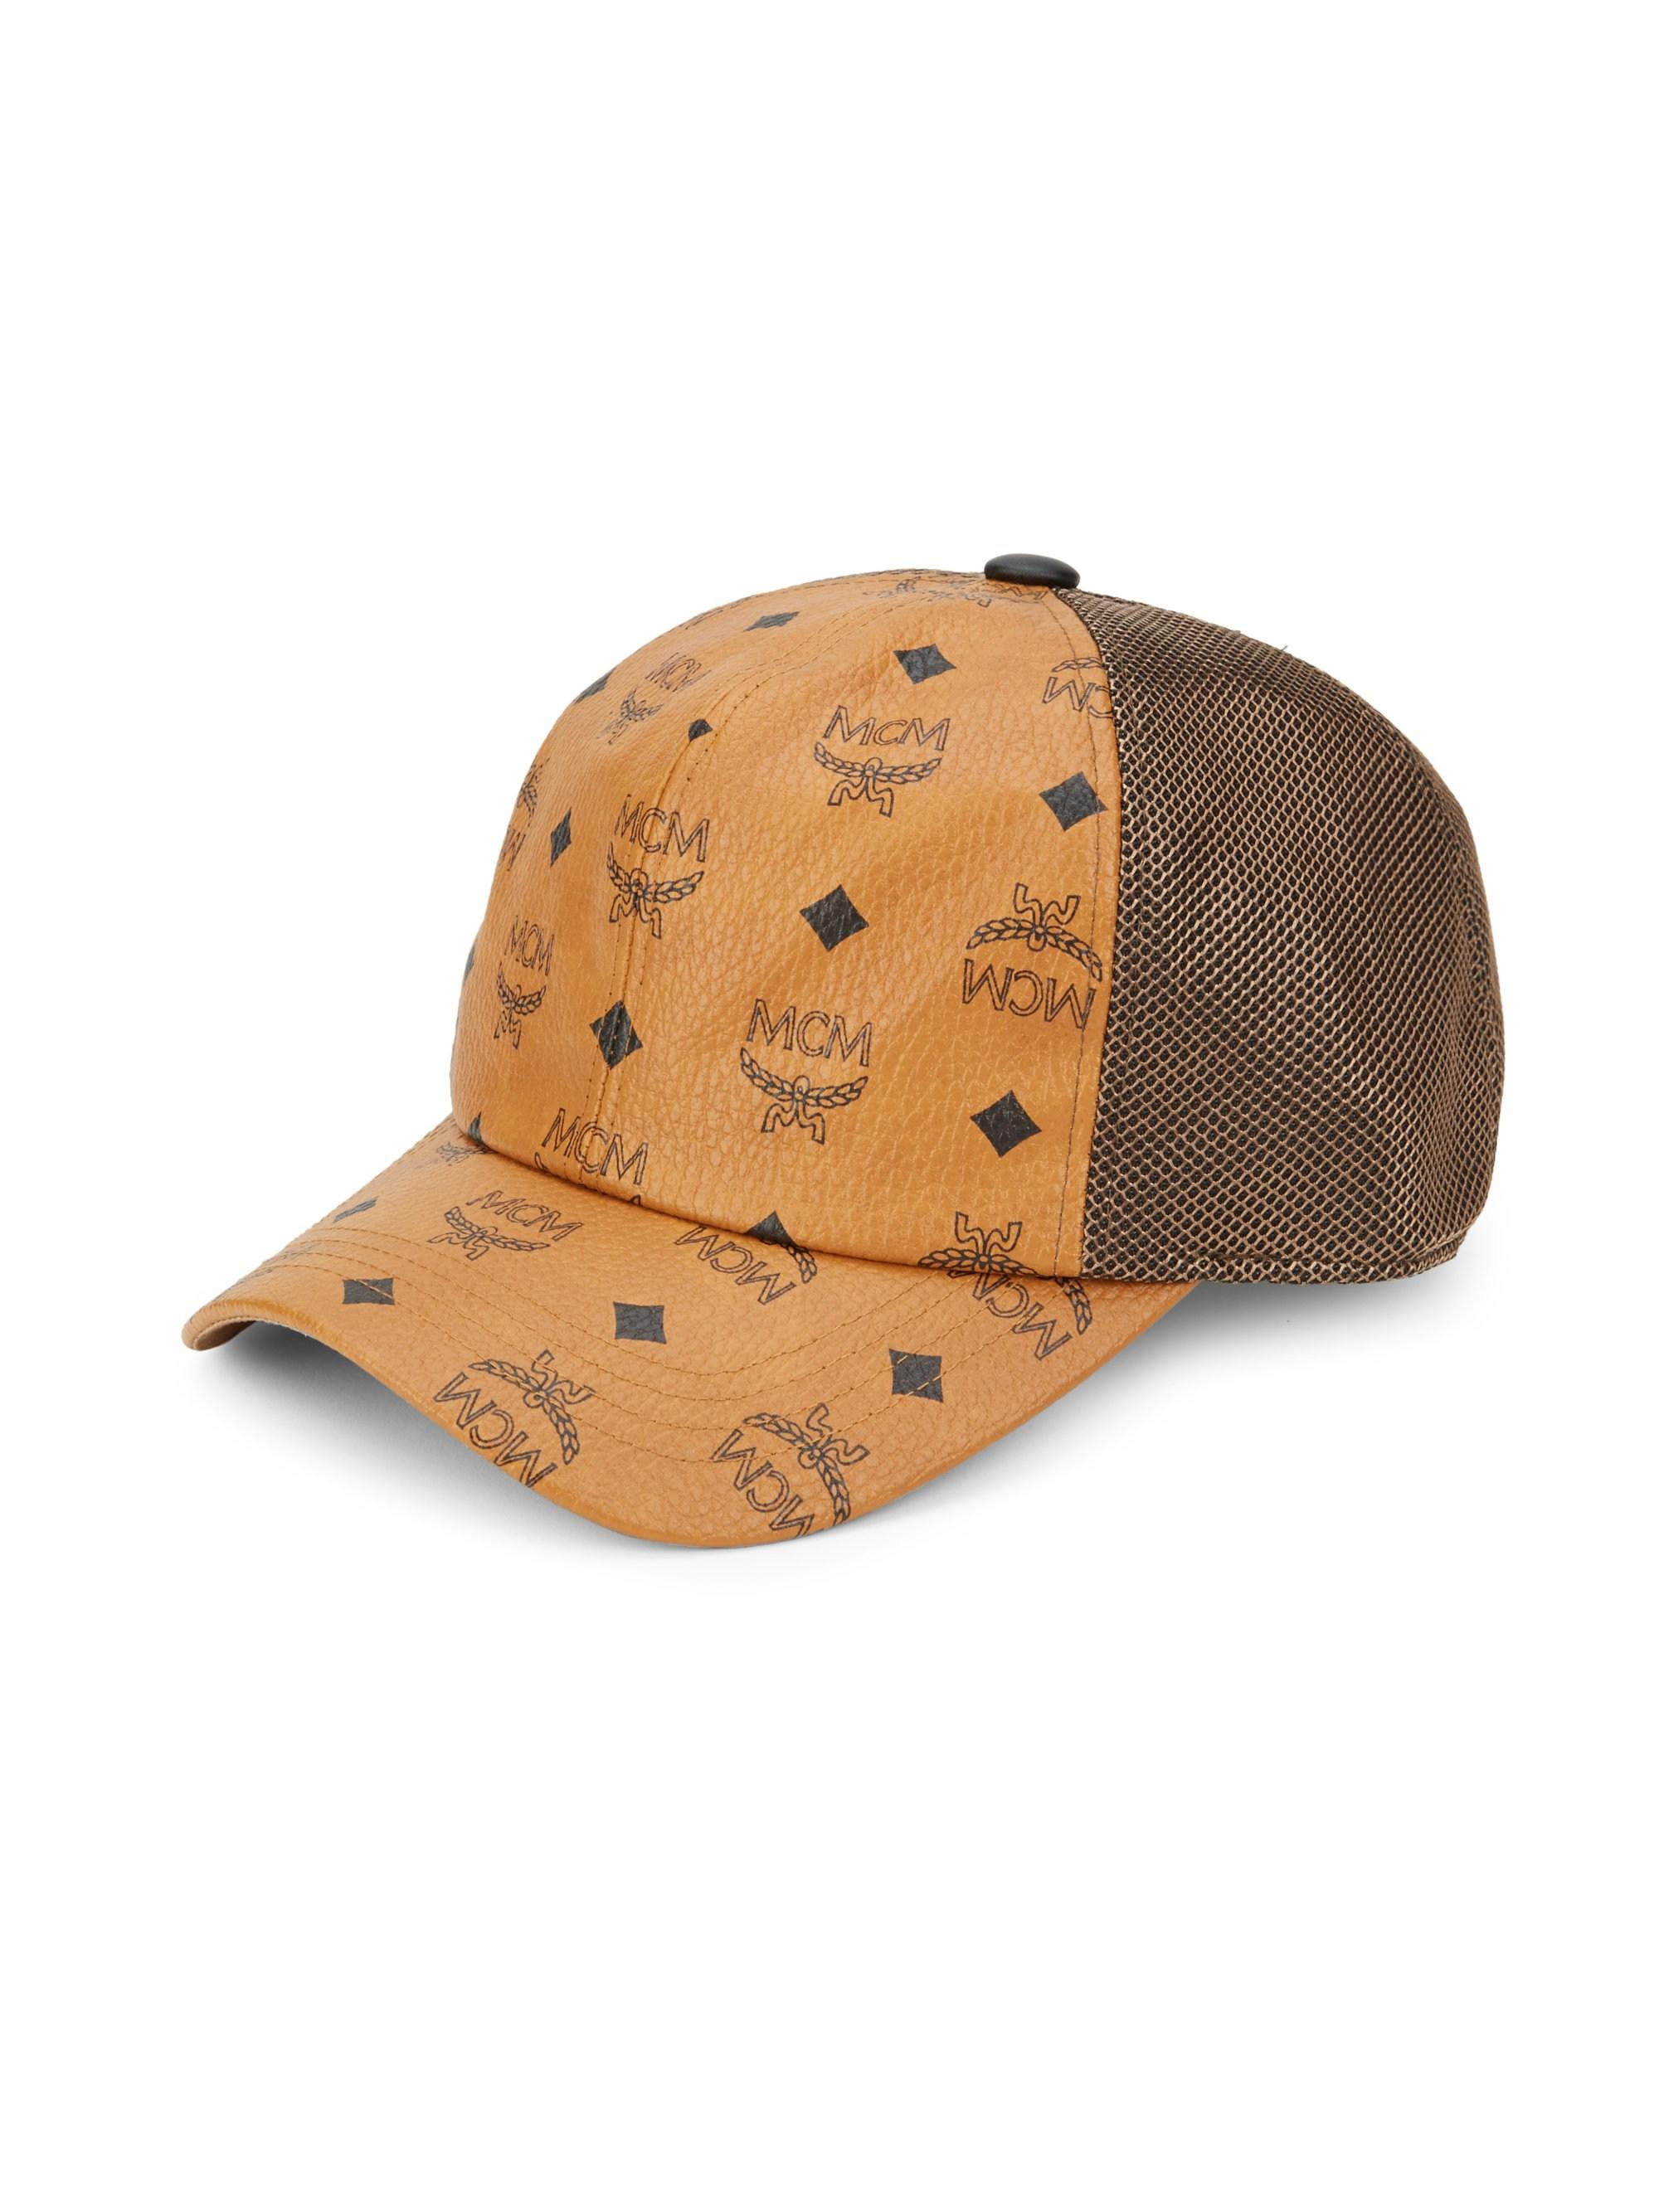 MCM - Brown Classic Mesh Cap In Visetos - Lyst. View fullscreen 9d749413955d